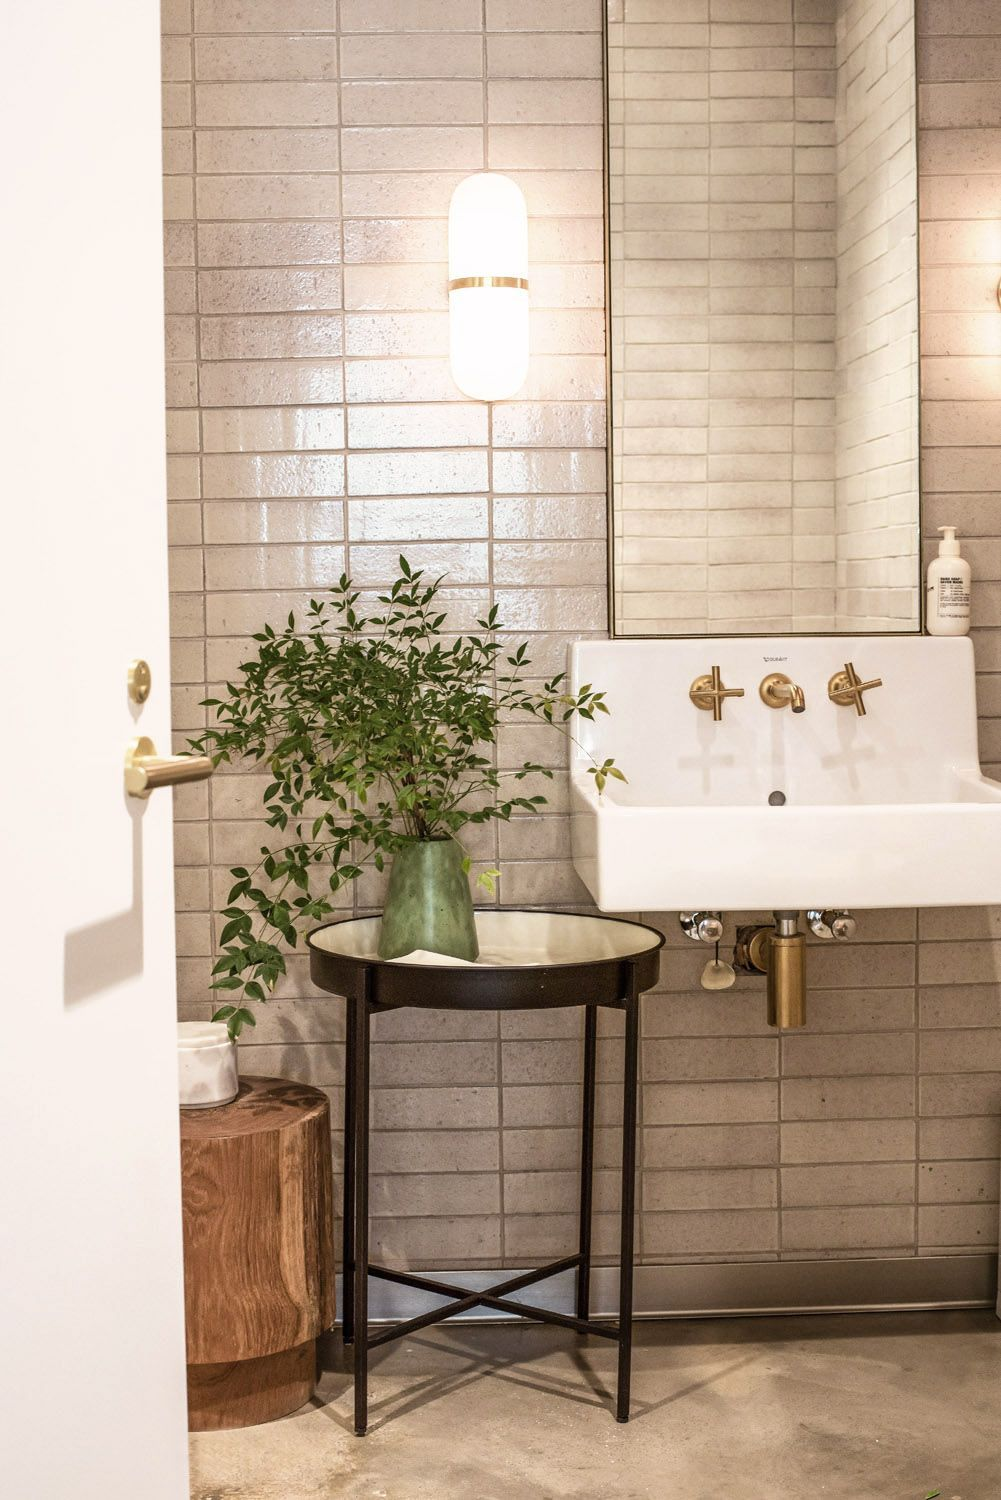 Most Popular Small Bathroom Remodel Ideas on a Budget in ...